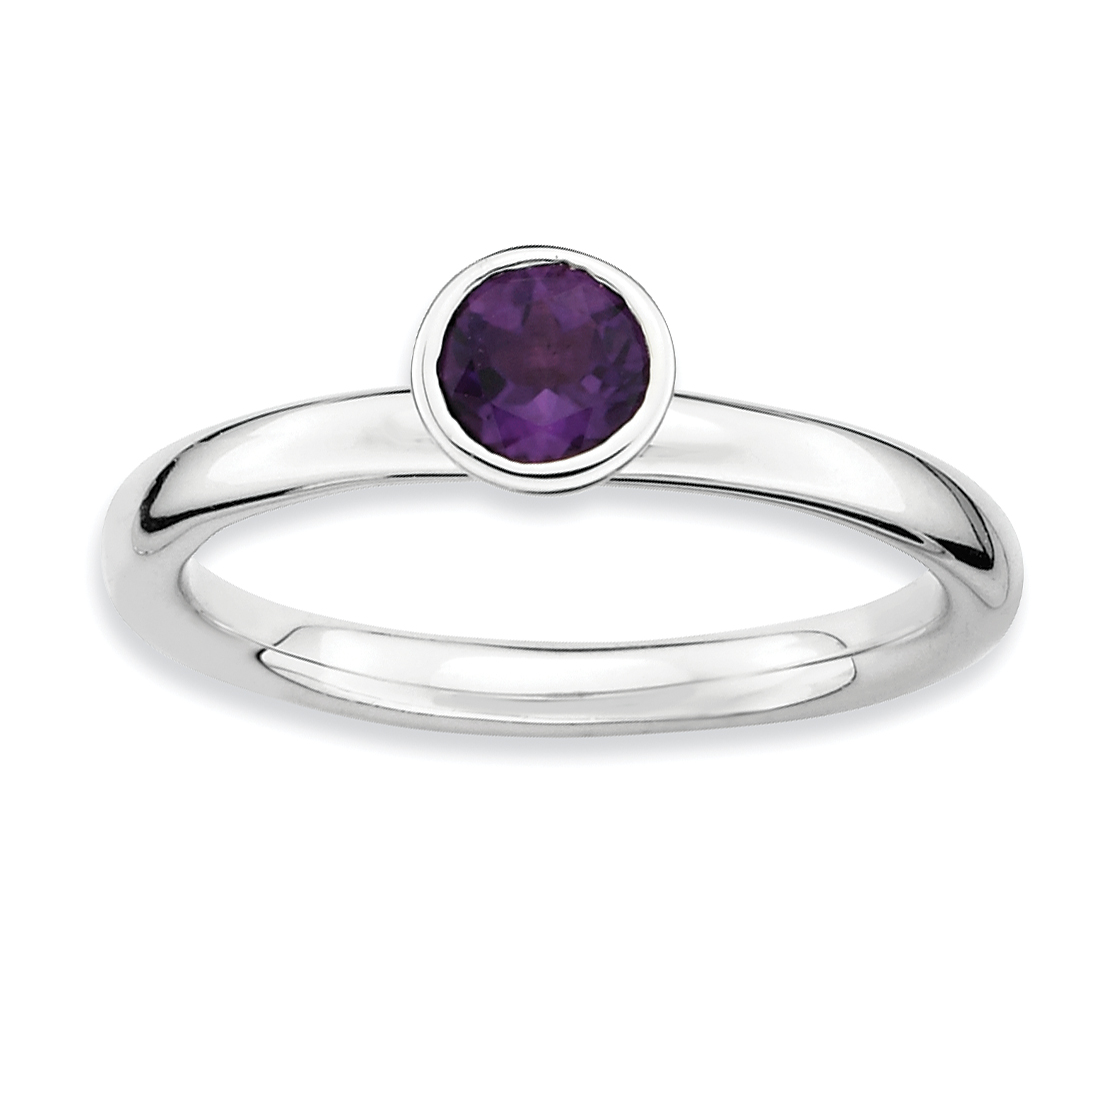 925 Sterling Silver High 5mm Round Purple Amethyst Band Ring Size 6.00 Stone Stackable Gemstone Birthstone February Fine Jewelry Gifts For Women For Her - image 4 of 4